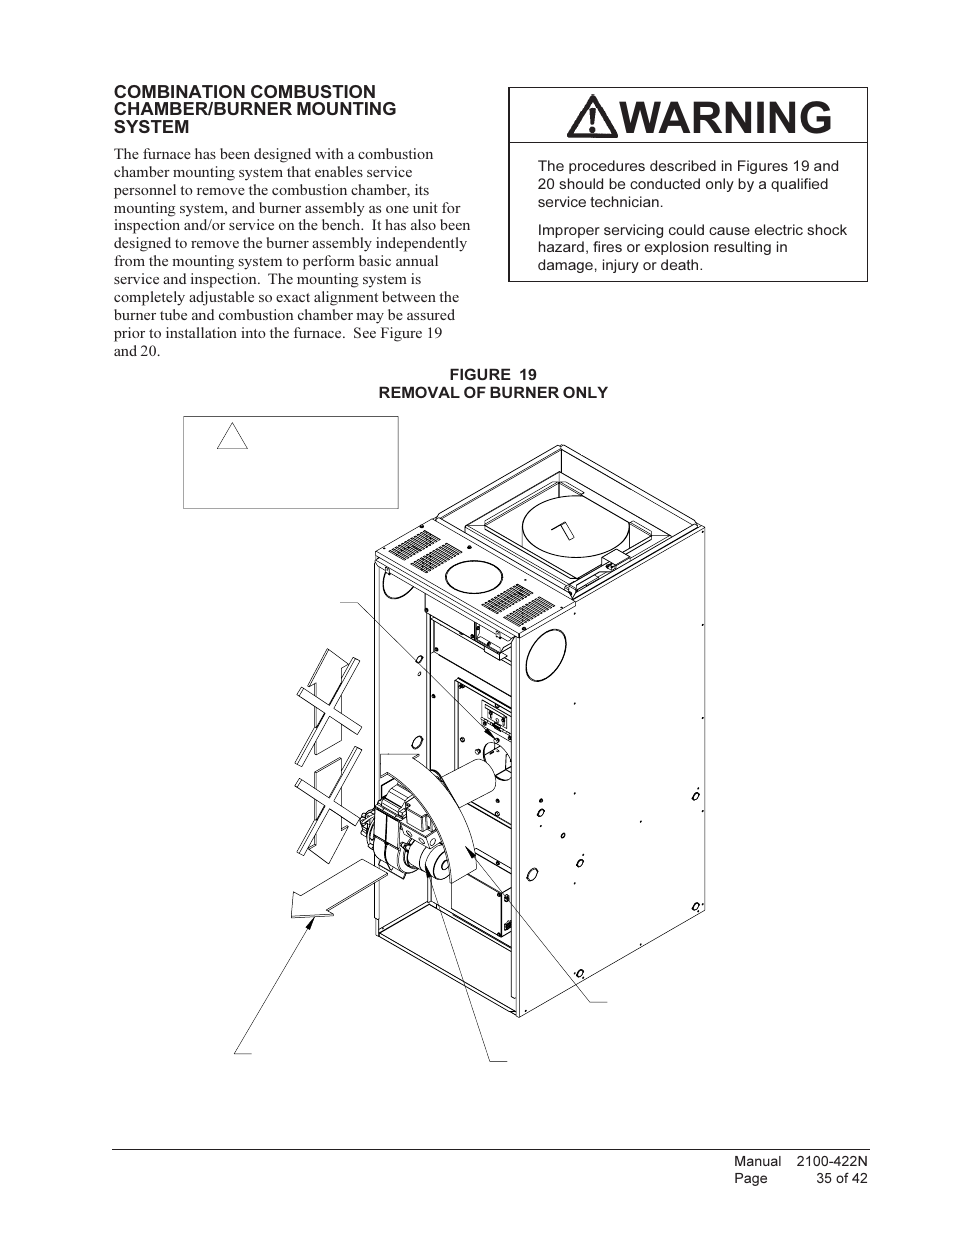 Old Bard Gas Furnace Wiring Manual Guide